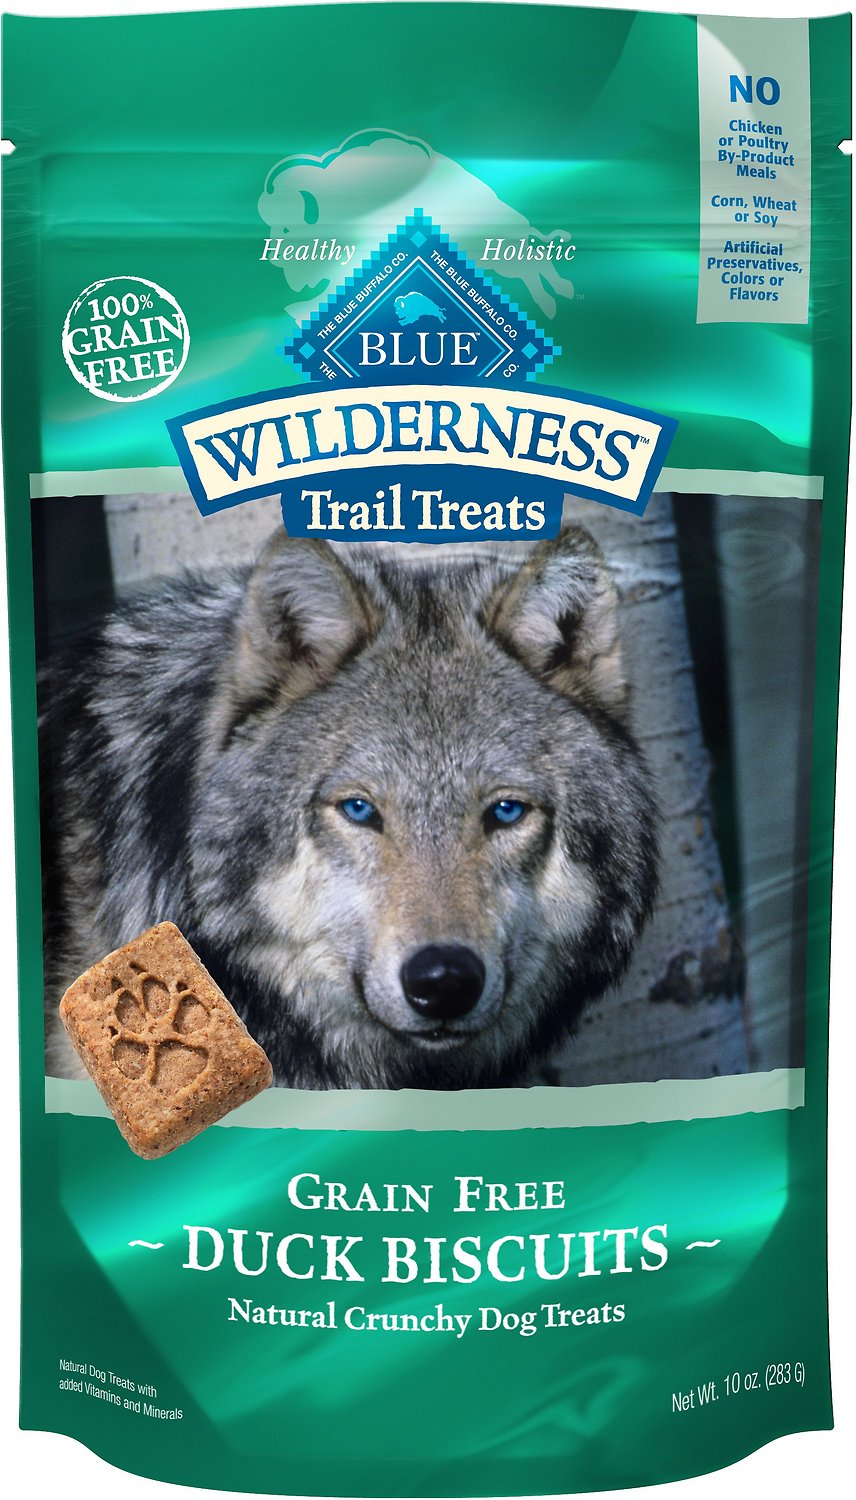 Blue Buffalo Wilderness Trail Treats Duck Biscuits Grain-Free Dog Treats, 10-oz bag